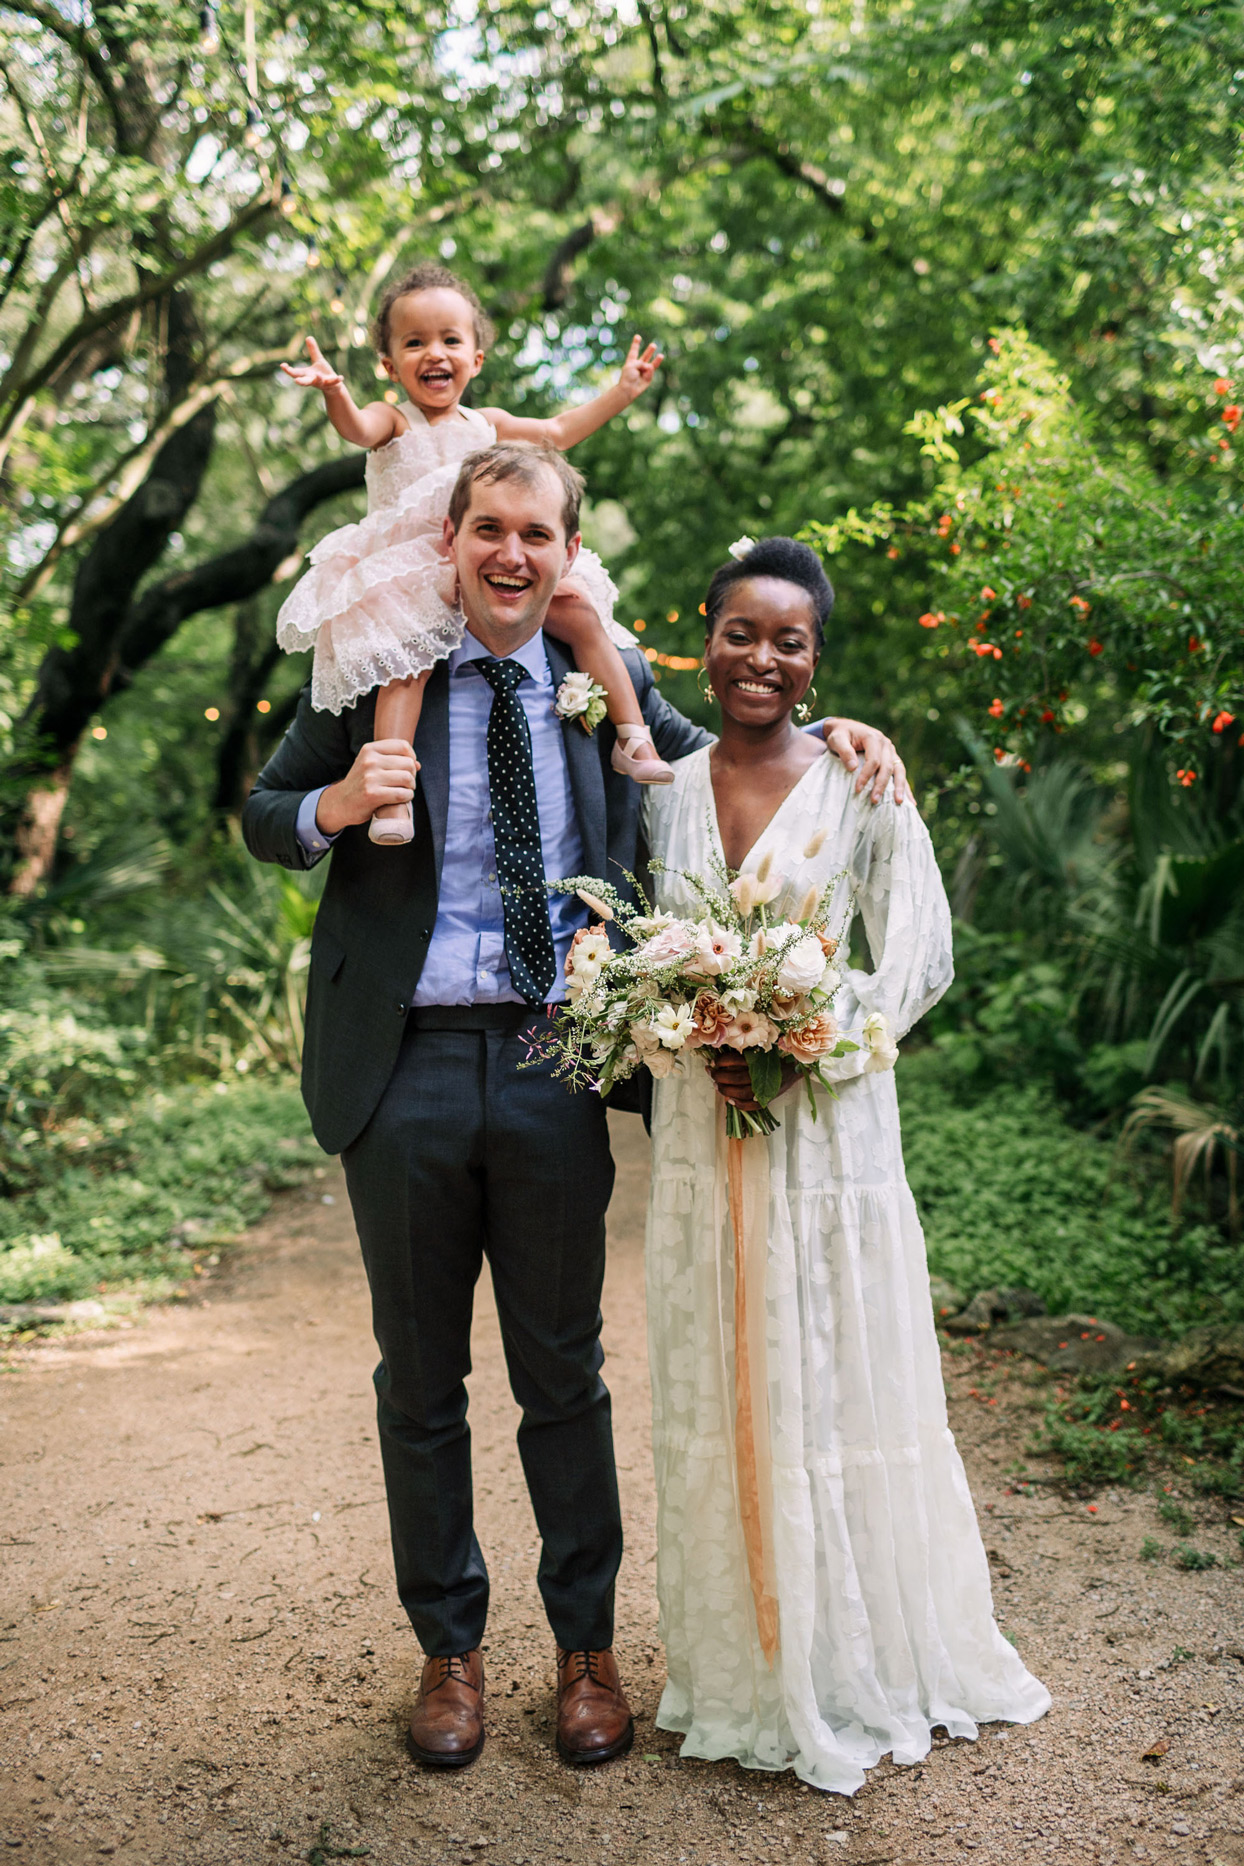 Bride and groom with flower girl in wooded area